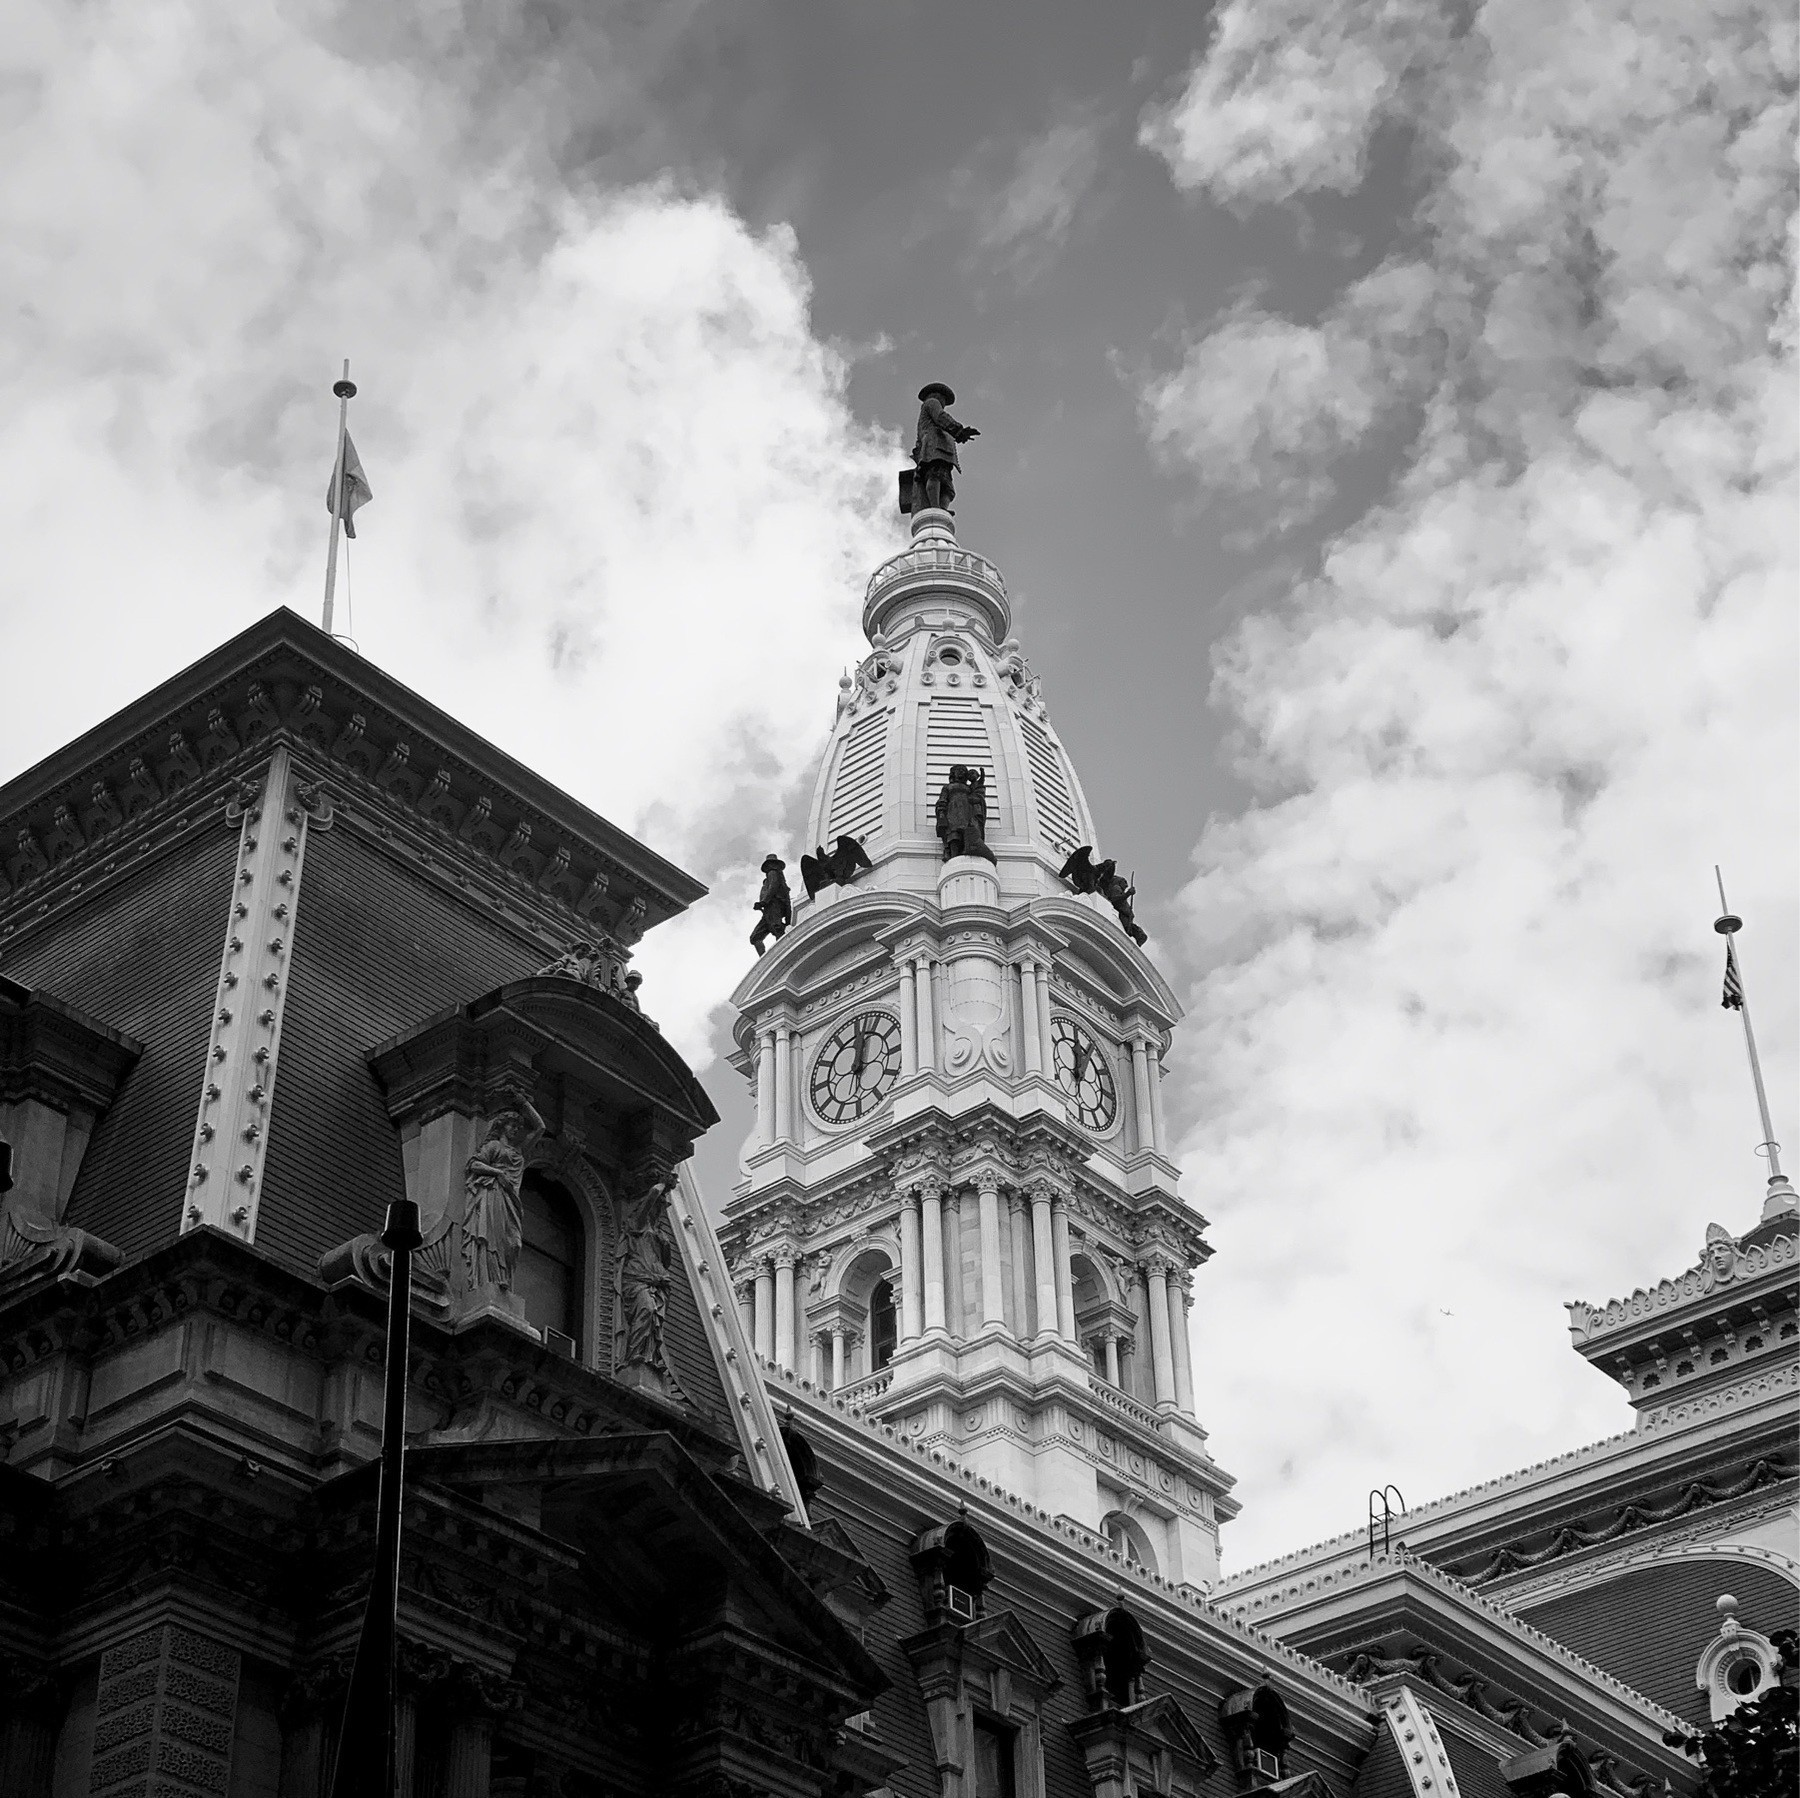 Middle tower of Philadelphia city hall, statue of William Penn on top.